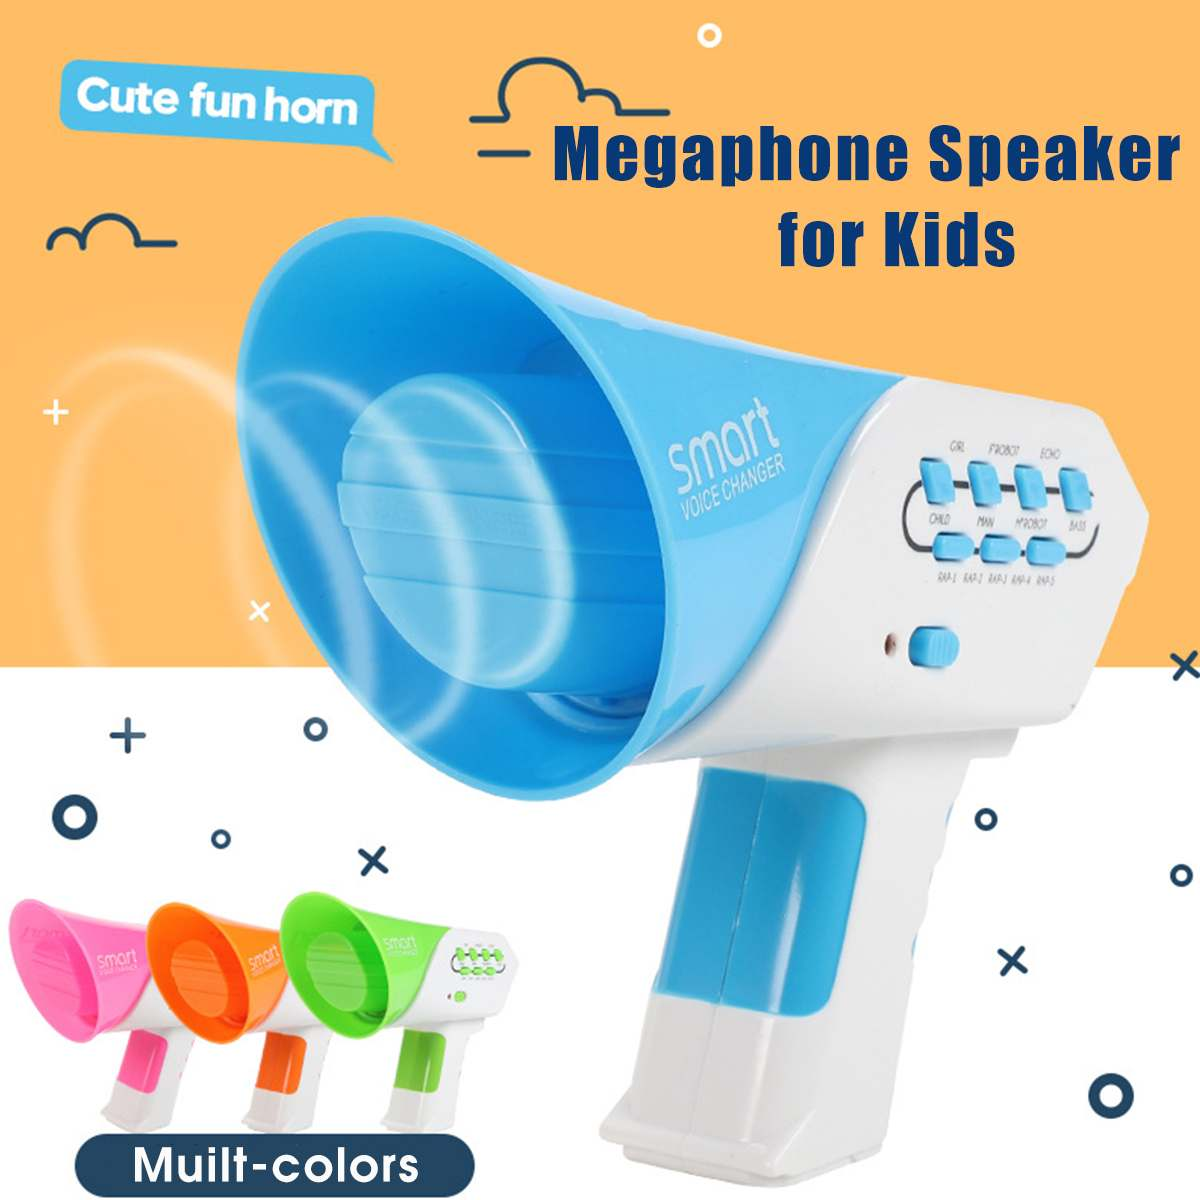 Multichannels Mini Voice Changer For Kids Children Handheled Loudspeaker Creatives Voice Changing Baby Toy Party Megaphone